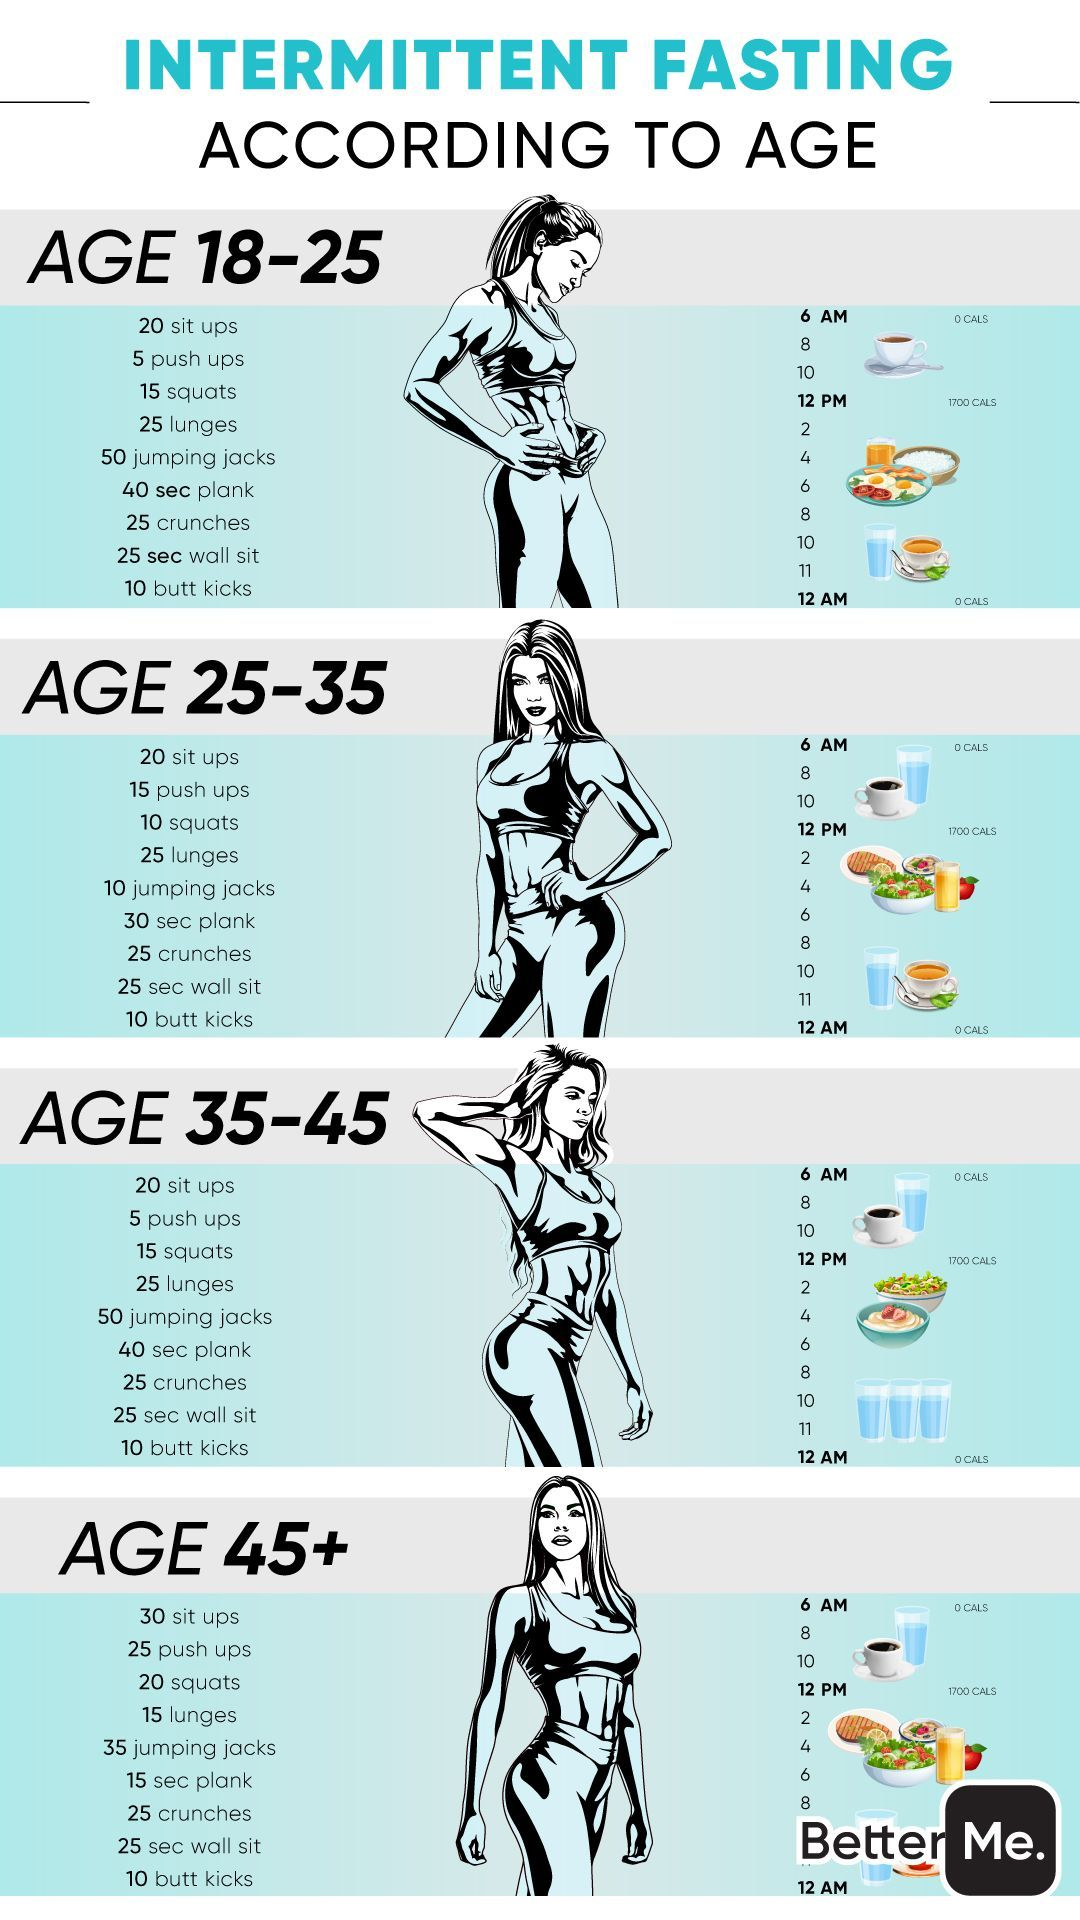 What type of intermittent fasting to choose? Take short test to find out. ������������������